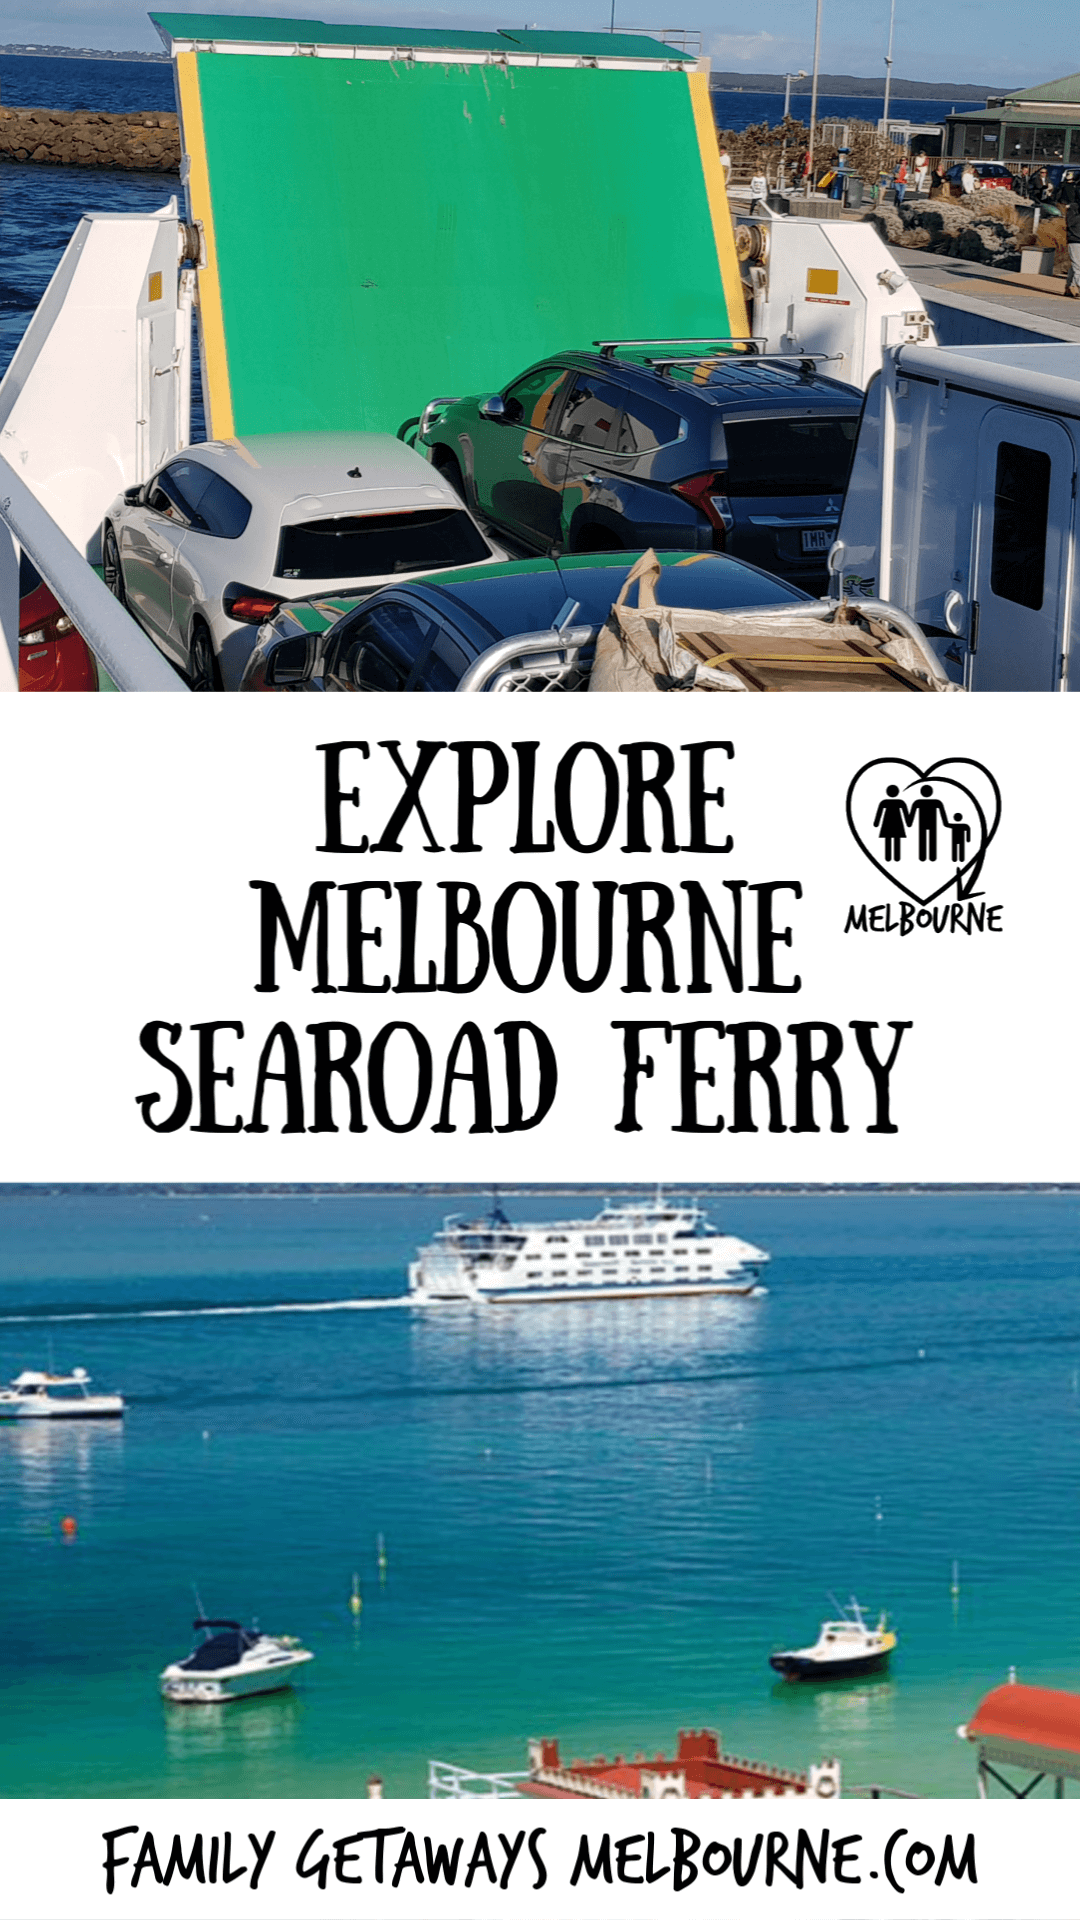 image of the Sorrento ferry shuttling passengers and vehicles between Sorrento and Queenscliff